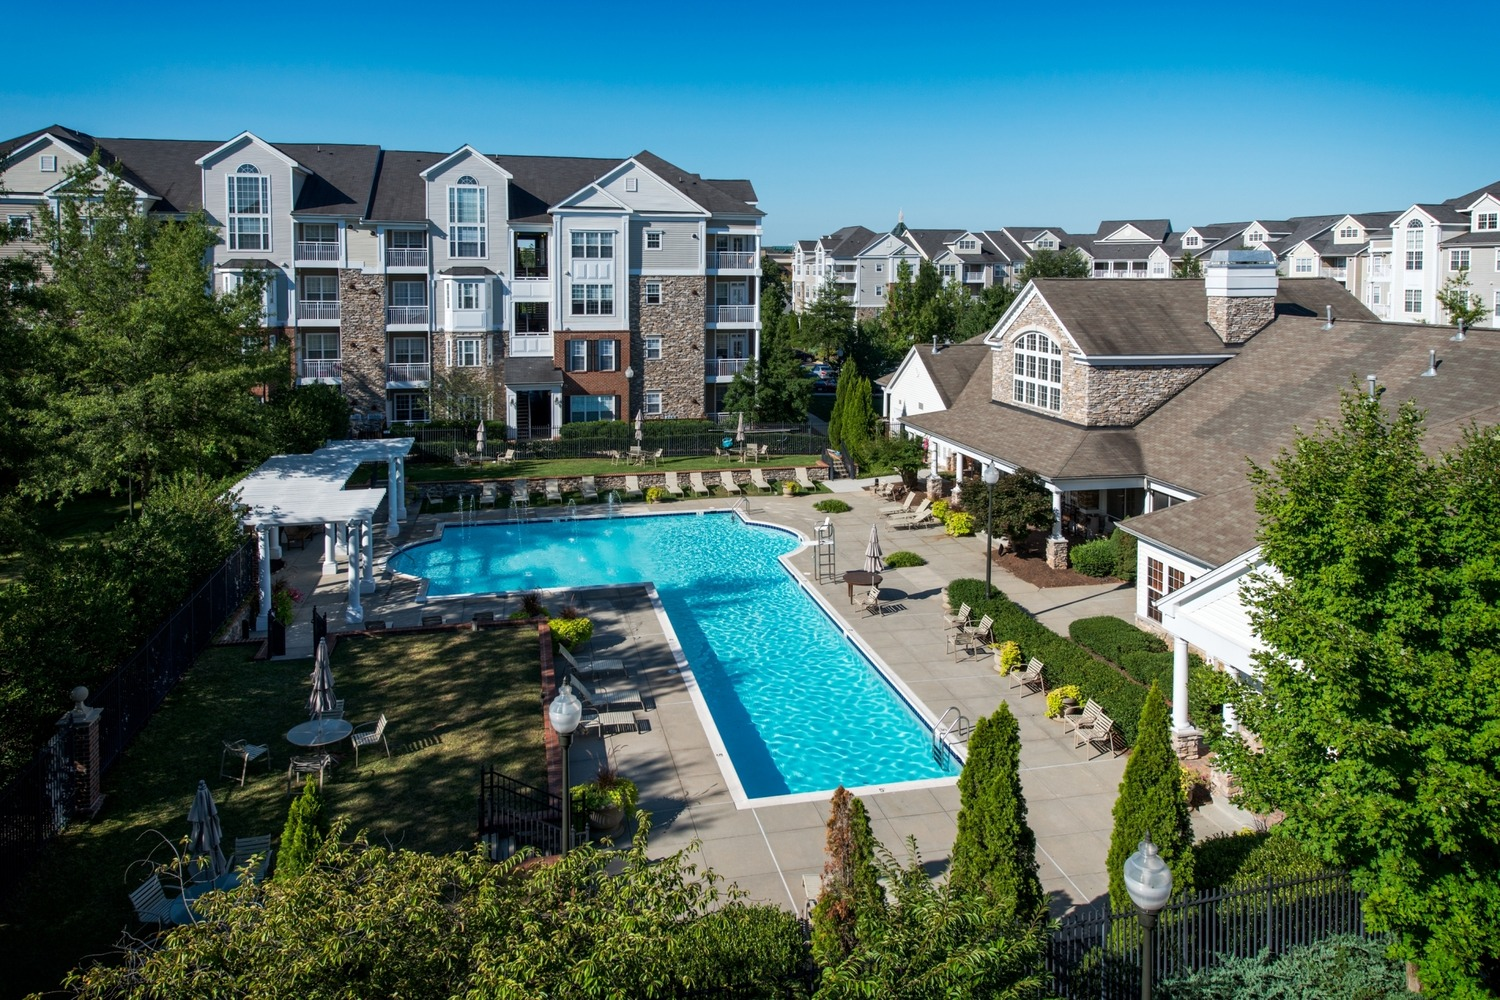 CBG builds Remington at Dulles Town Center, a 406 Market-Rate Apartments in Sterling, VA